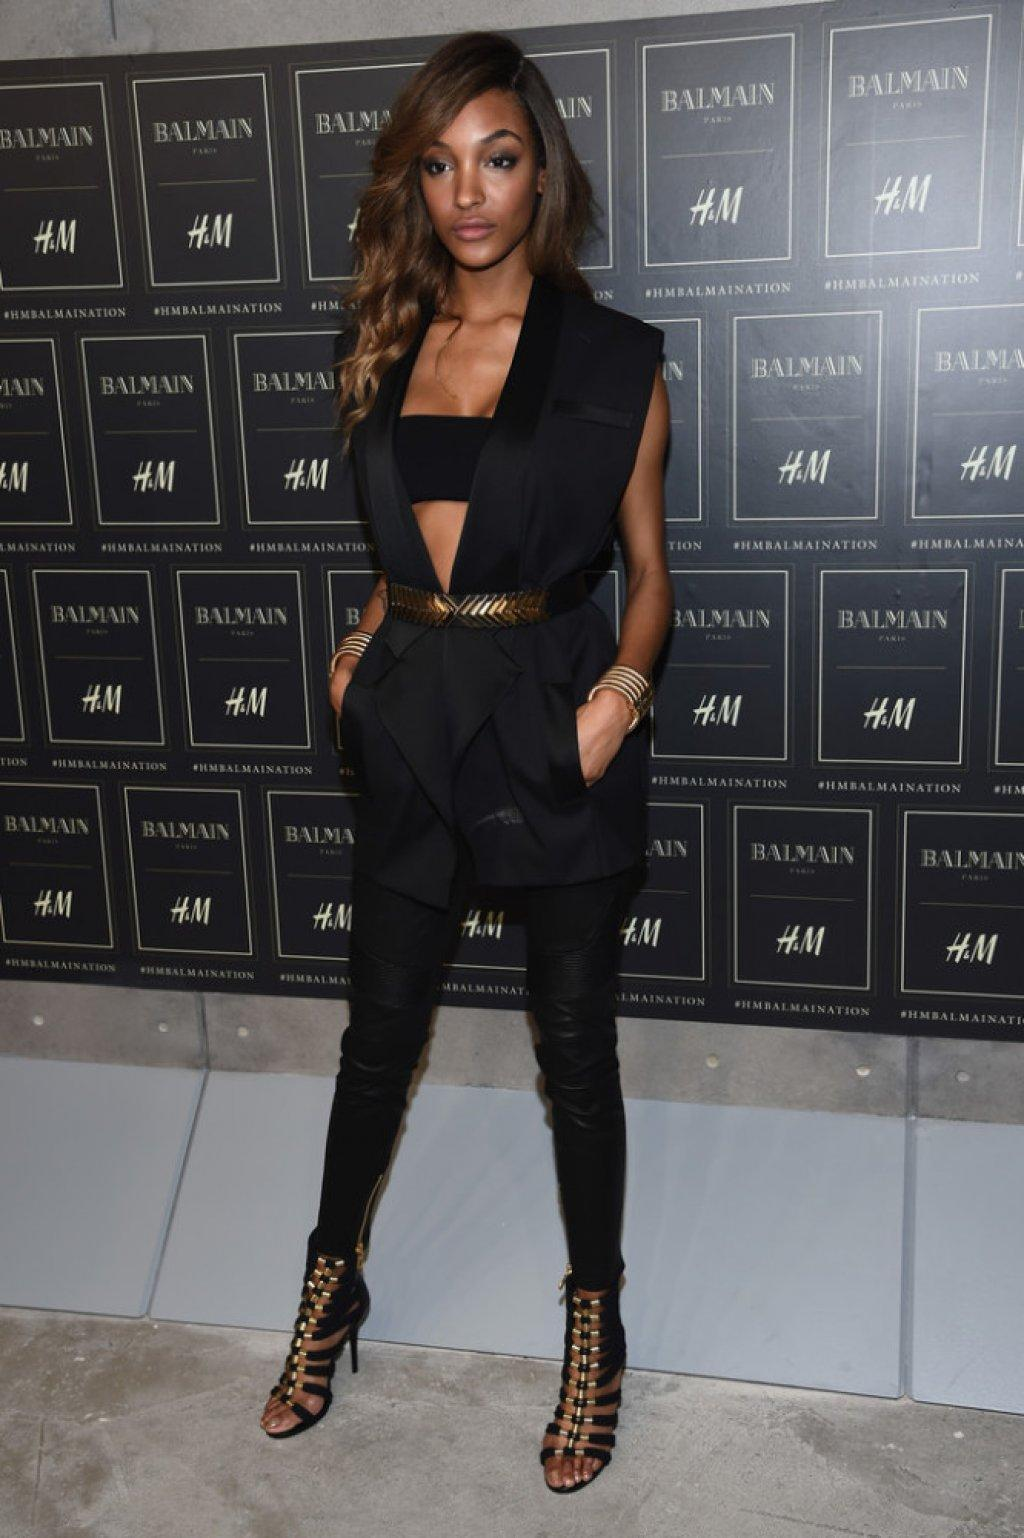 The-BALMAIN-X-HM-Collection-Launch1